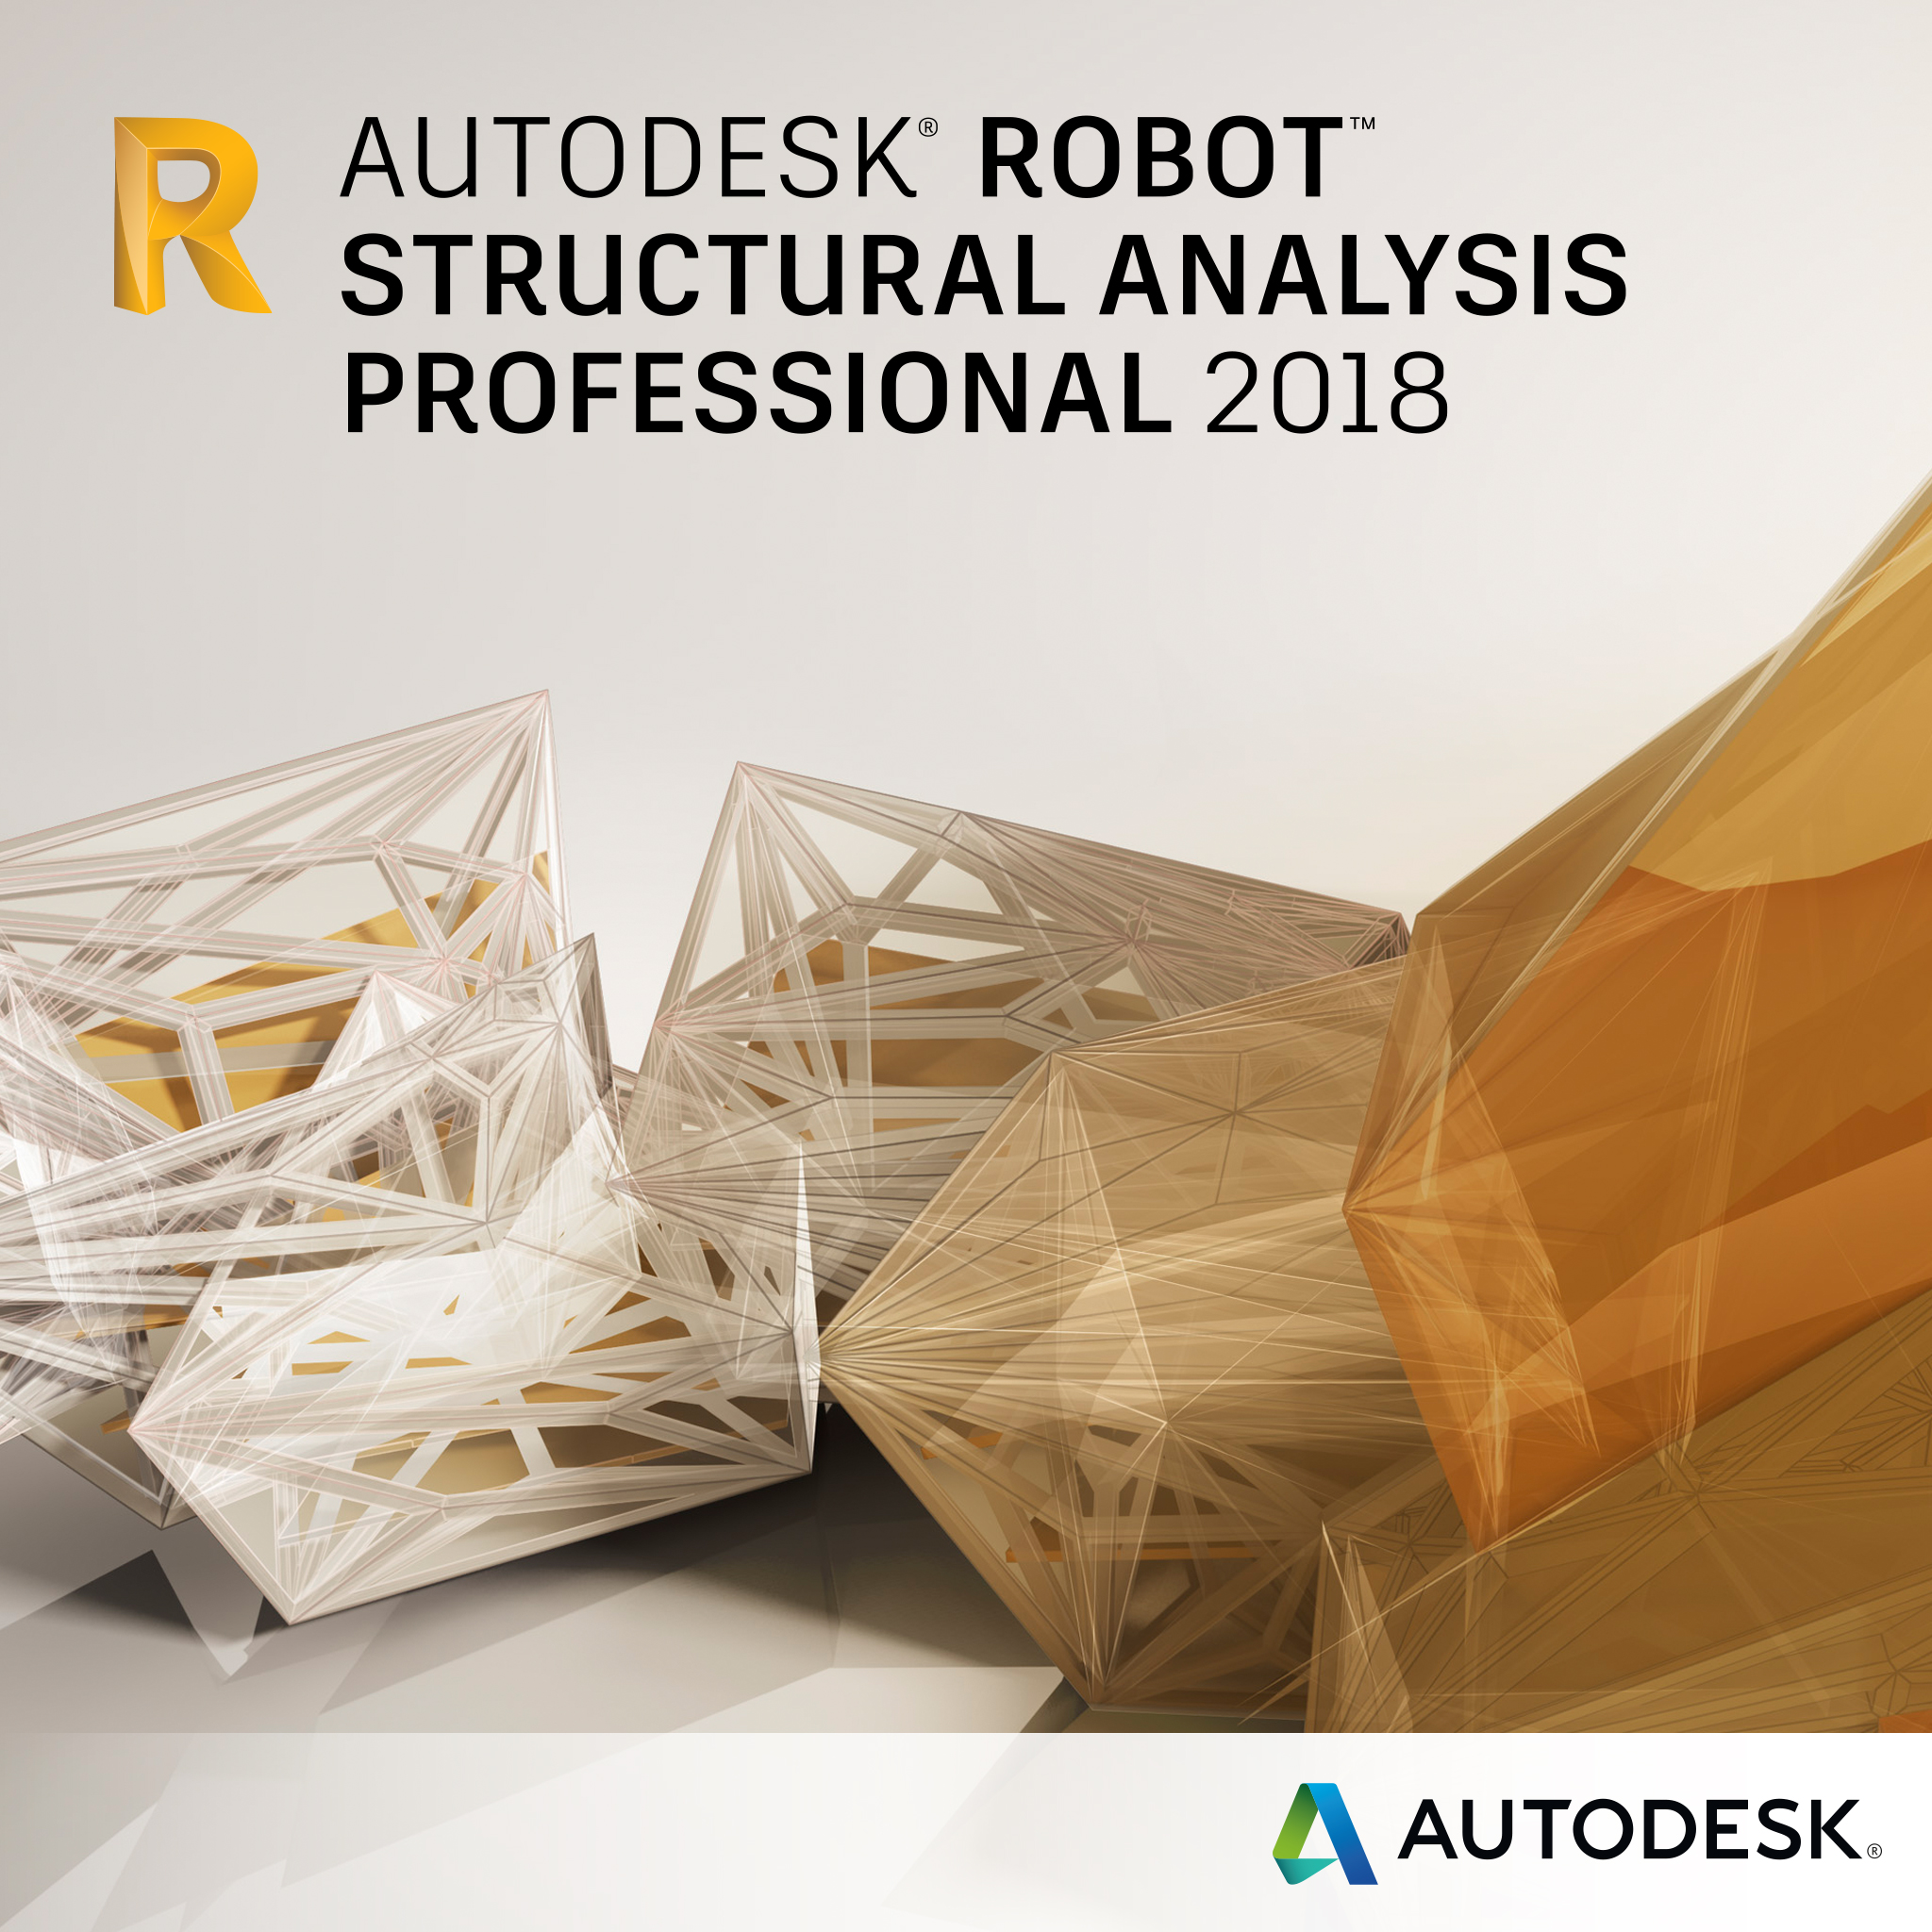 Autodesk Robot Structural Analysis Professional badge